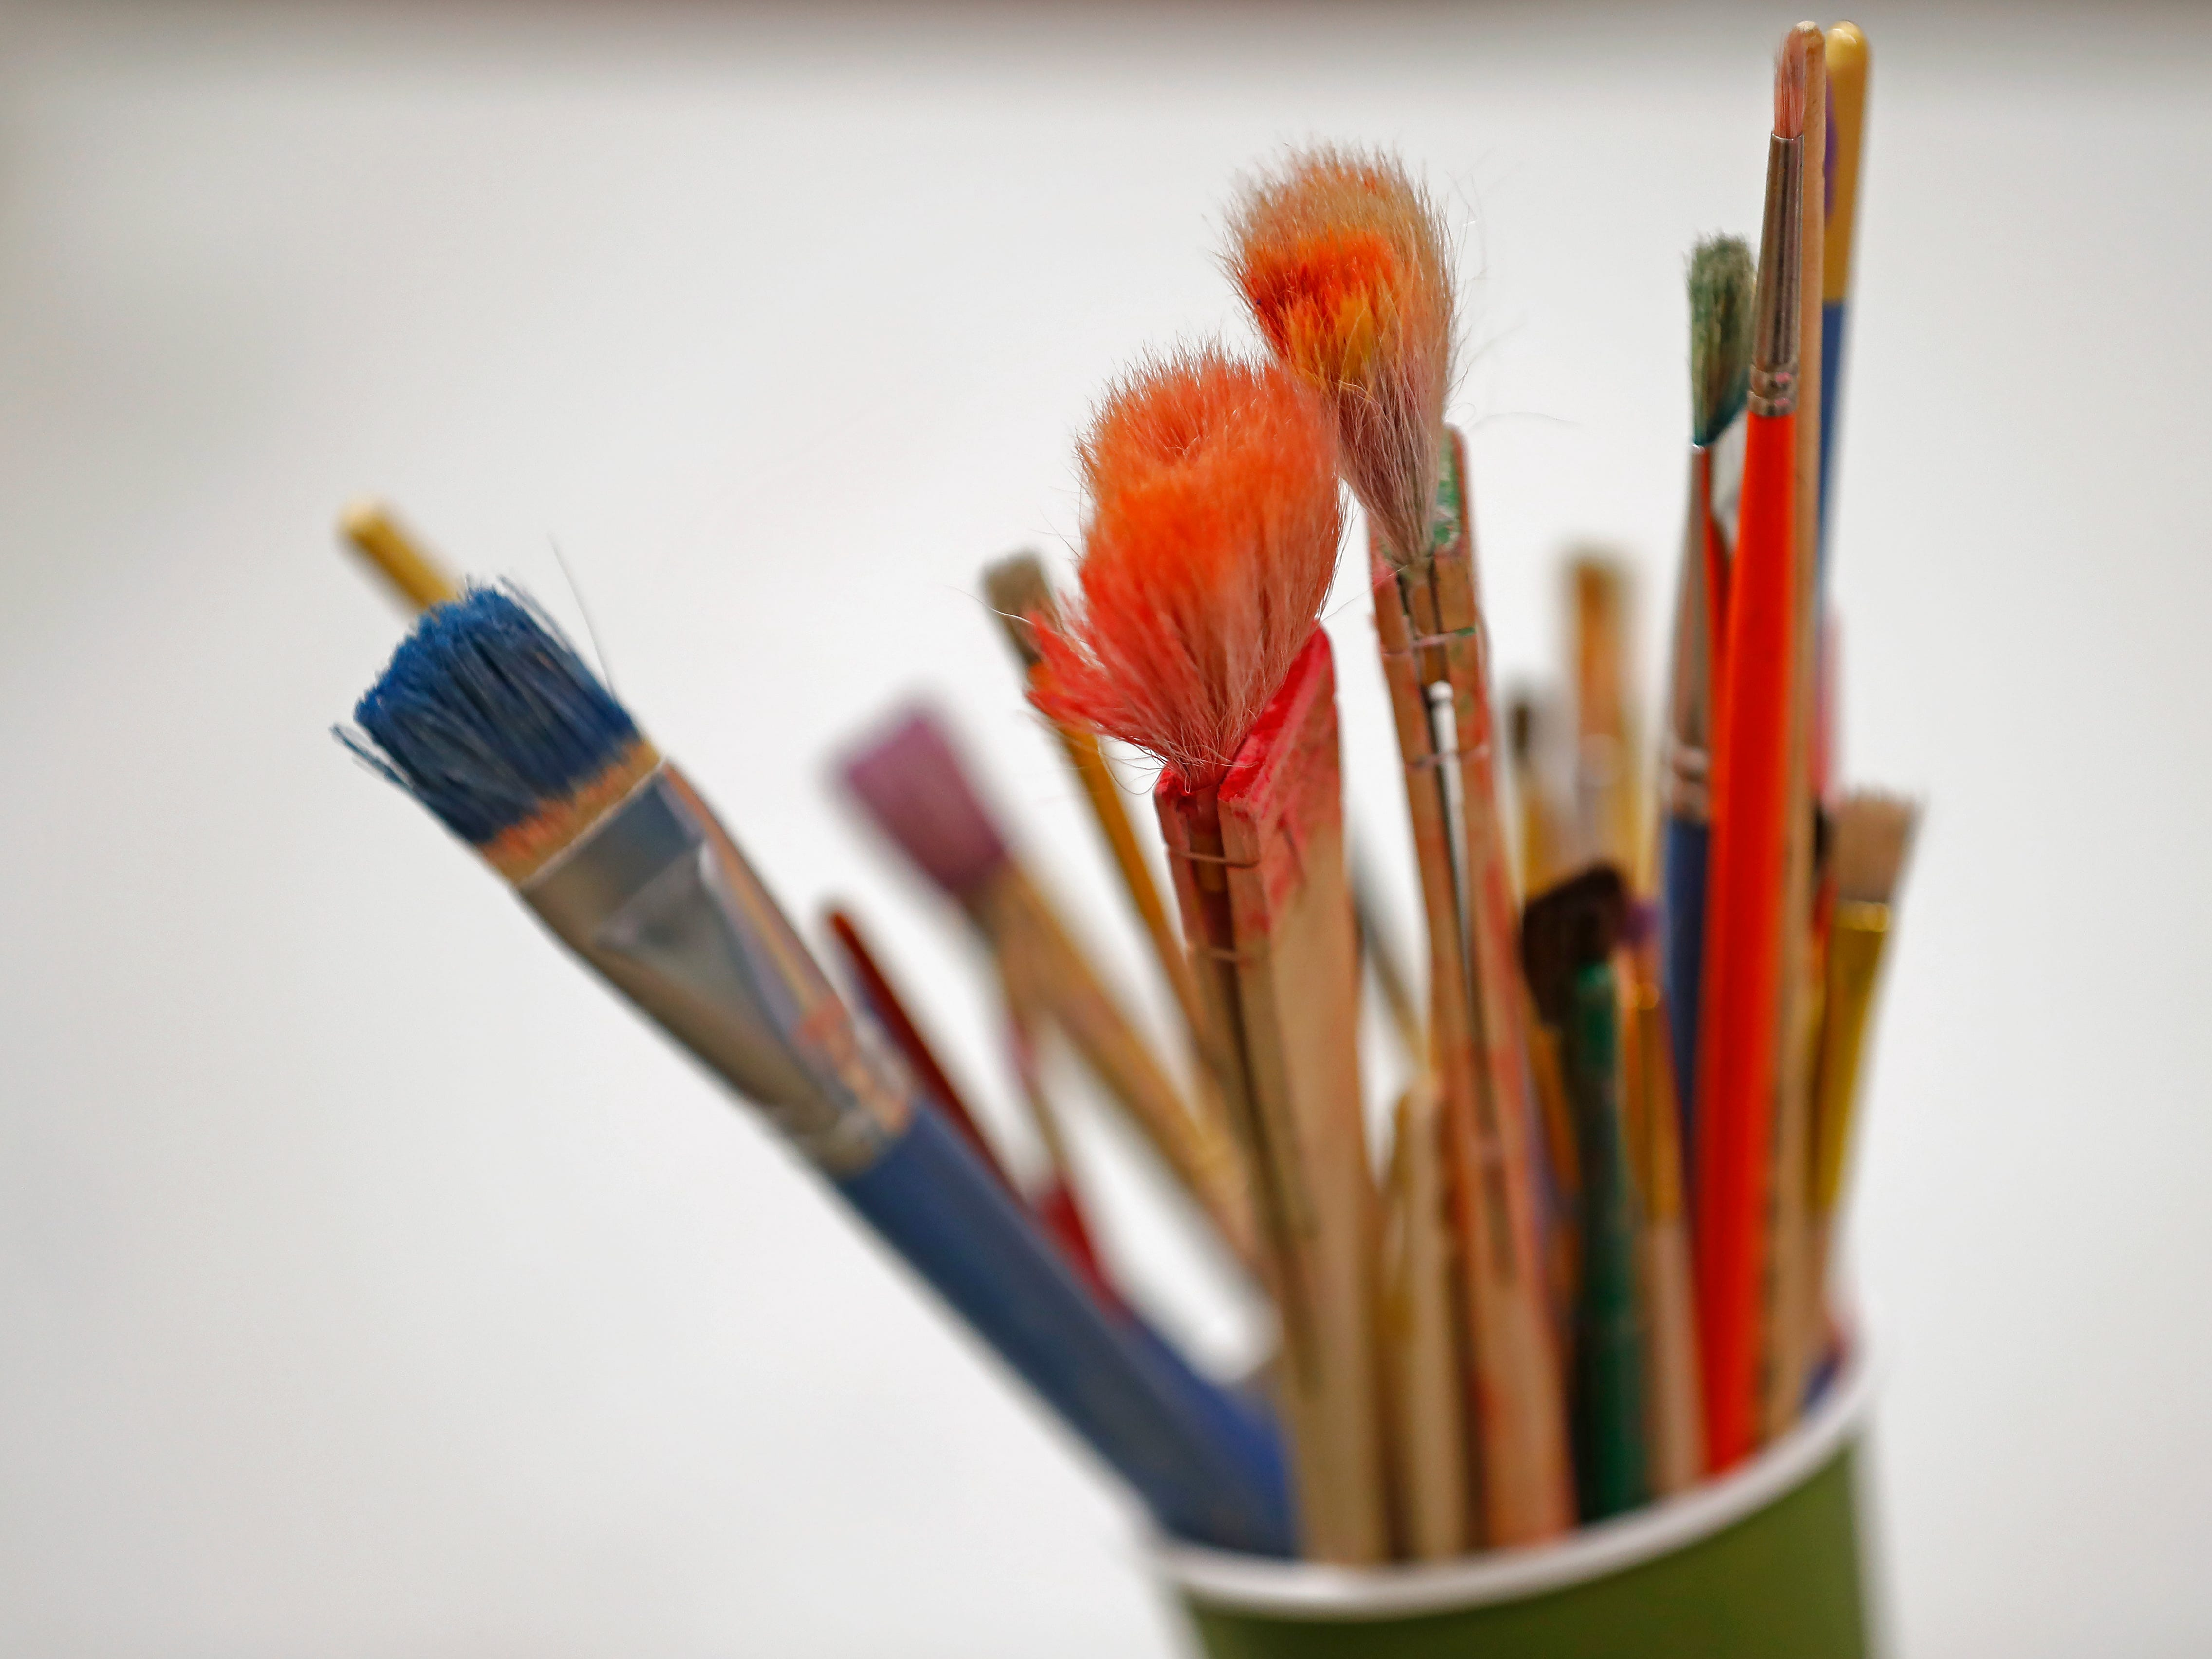 Paint brushes are seen in the Clowes Foundation Art Room at Indiana Youth Group, Tuesday, Nov. 27, 2018.  The organization offers a safe drop-in center for LGBTQ+ youth, ages 12-20, and their straight ally friends, in the Indianapolis area.  Activities, tutoring, food and clothes pantries are included in the center.